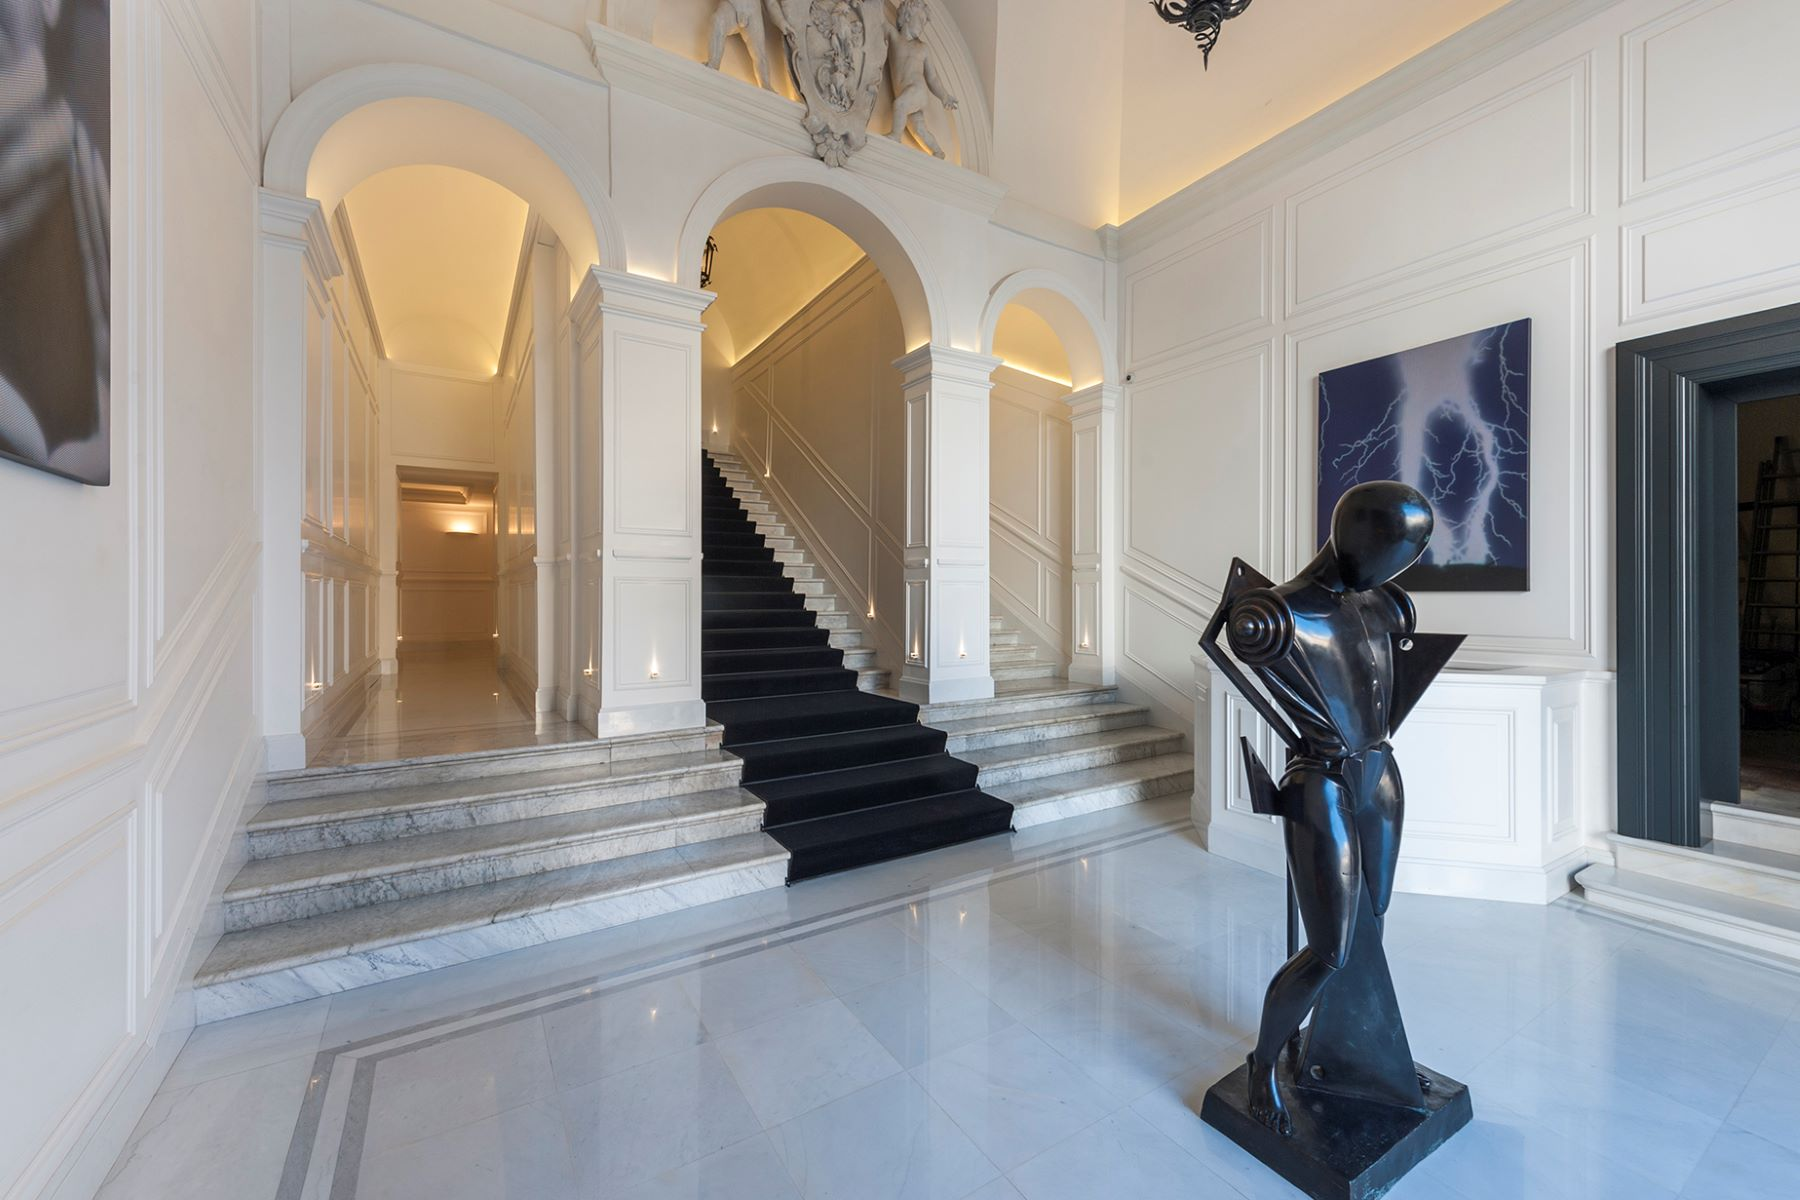 Apartment for Sale at Luxurious loft in Piazza Borghese Rome, Rome 00186 Italy